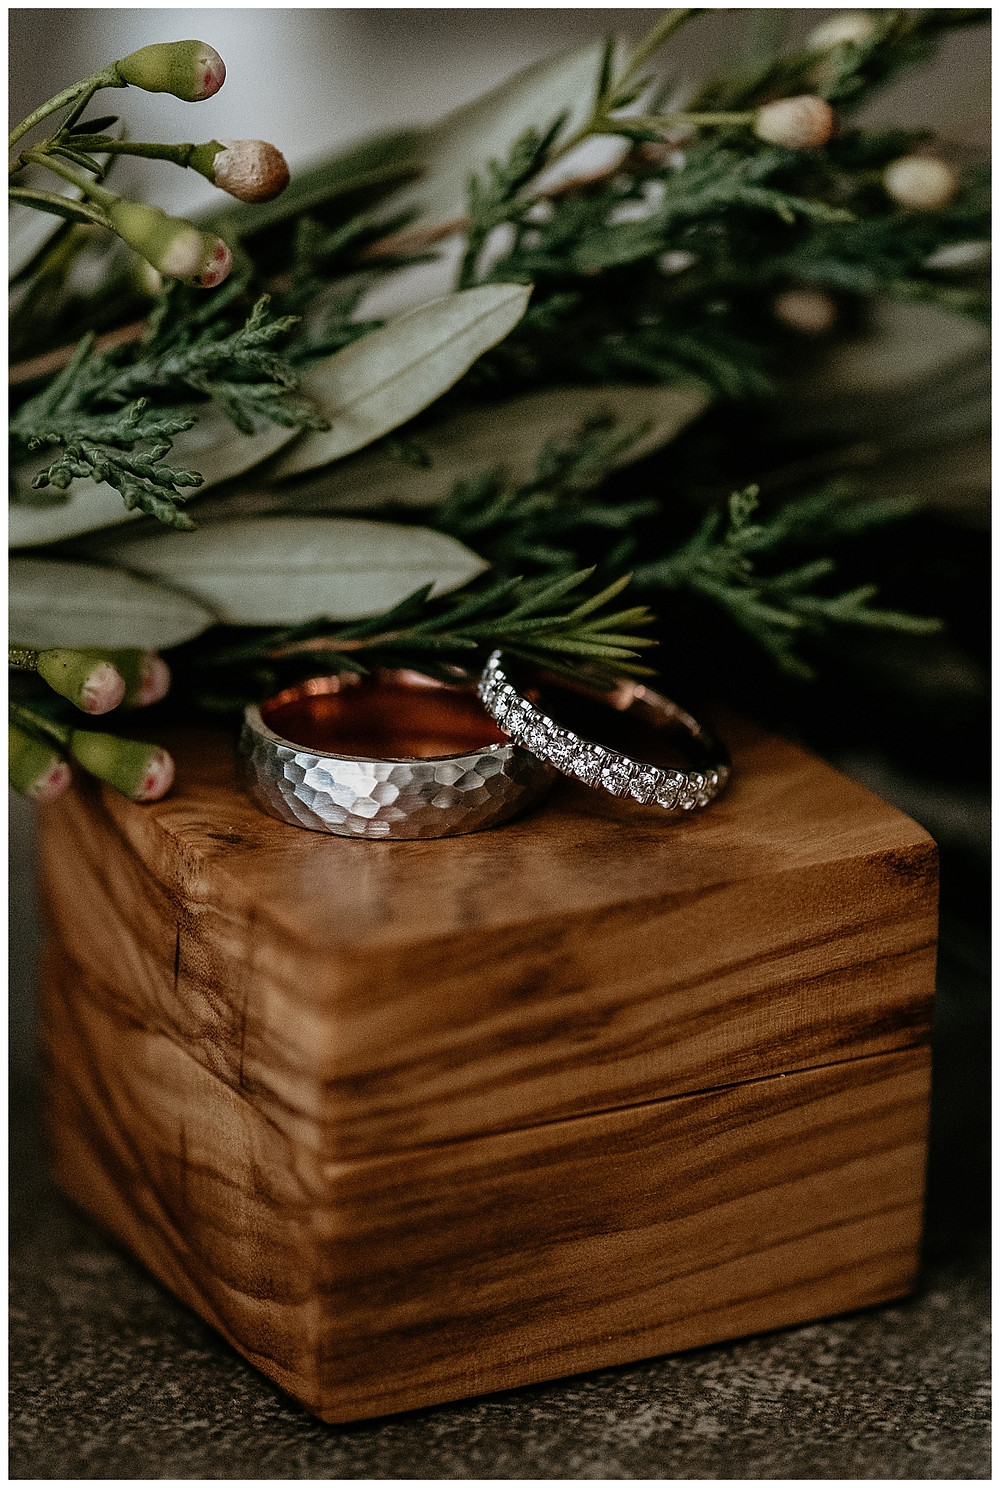 Diamond Wedding Ring and Hammered Metal Wedding Band with Wooden Ring Box